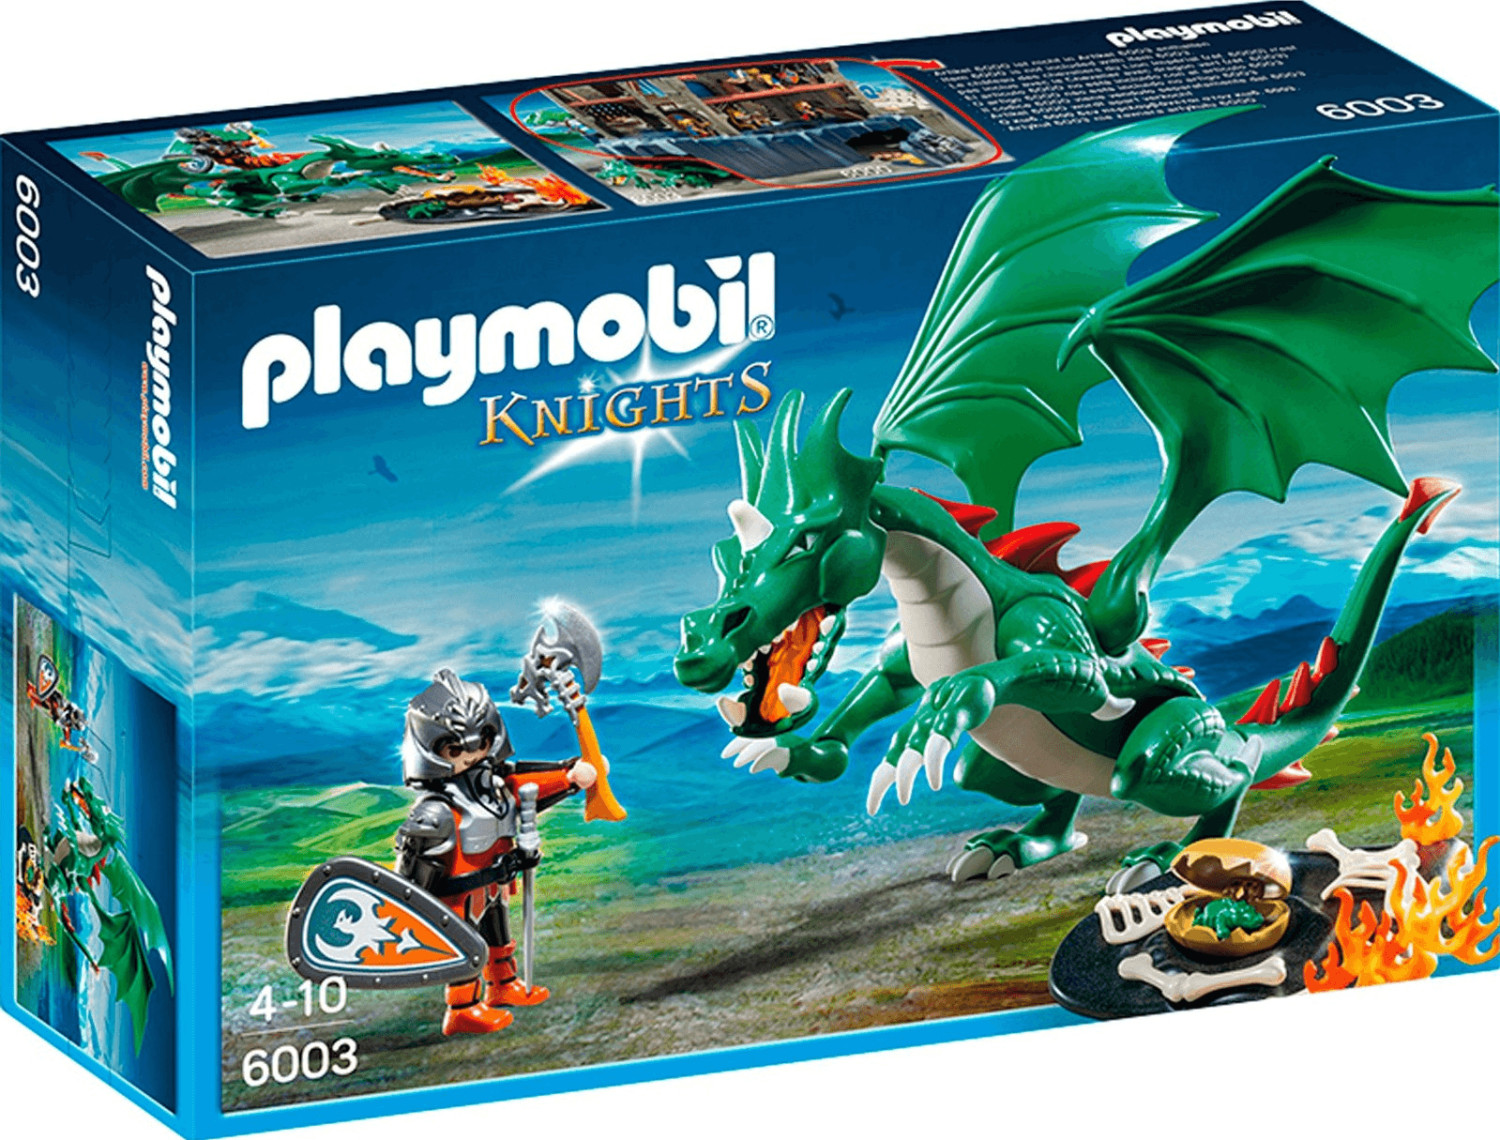 Playmobil Knights - Großer Burgdrache (6003)